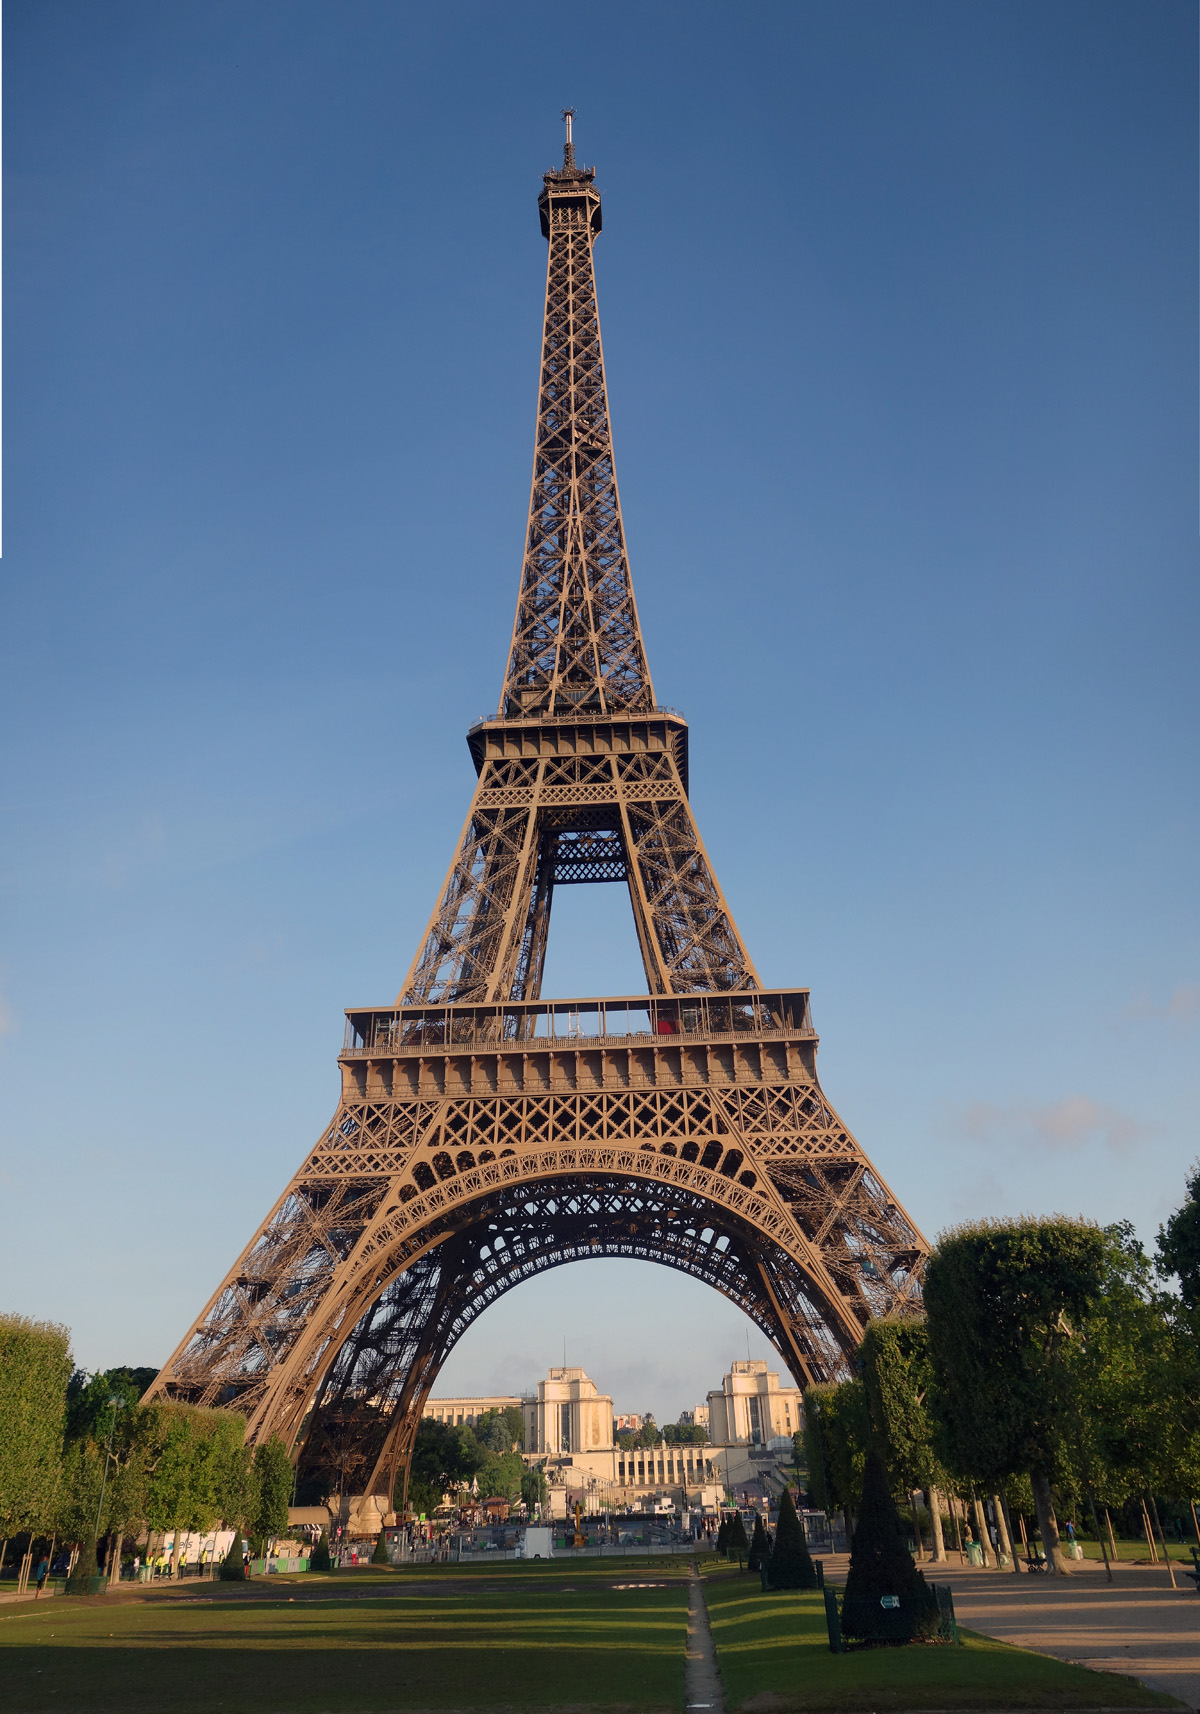 The  Eiffel Tower - one of the worlds most iconic structures